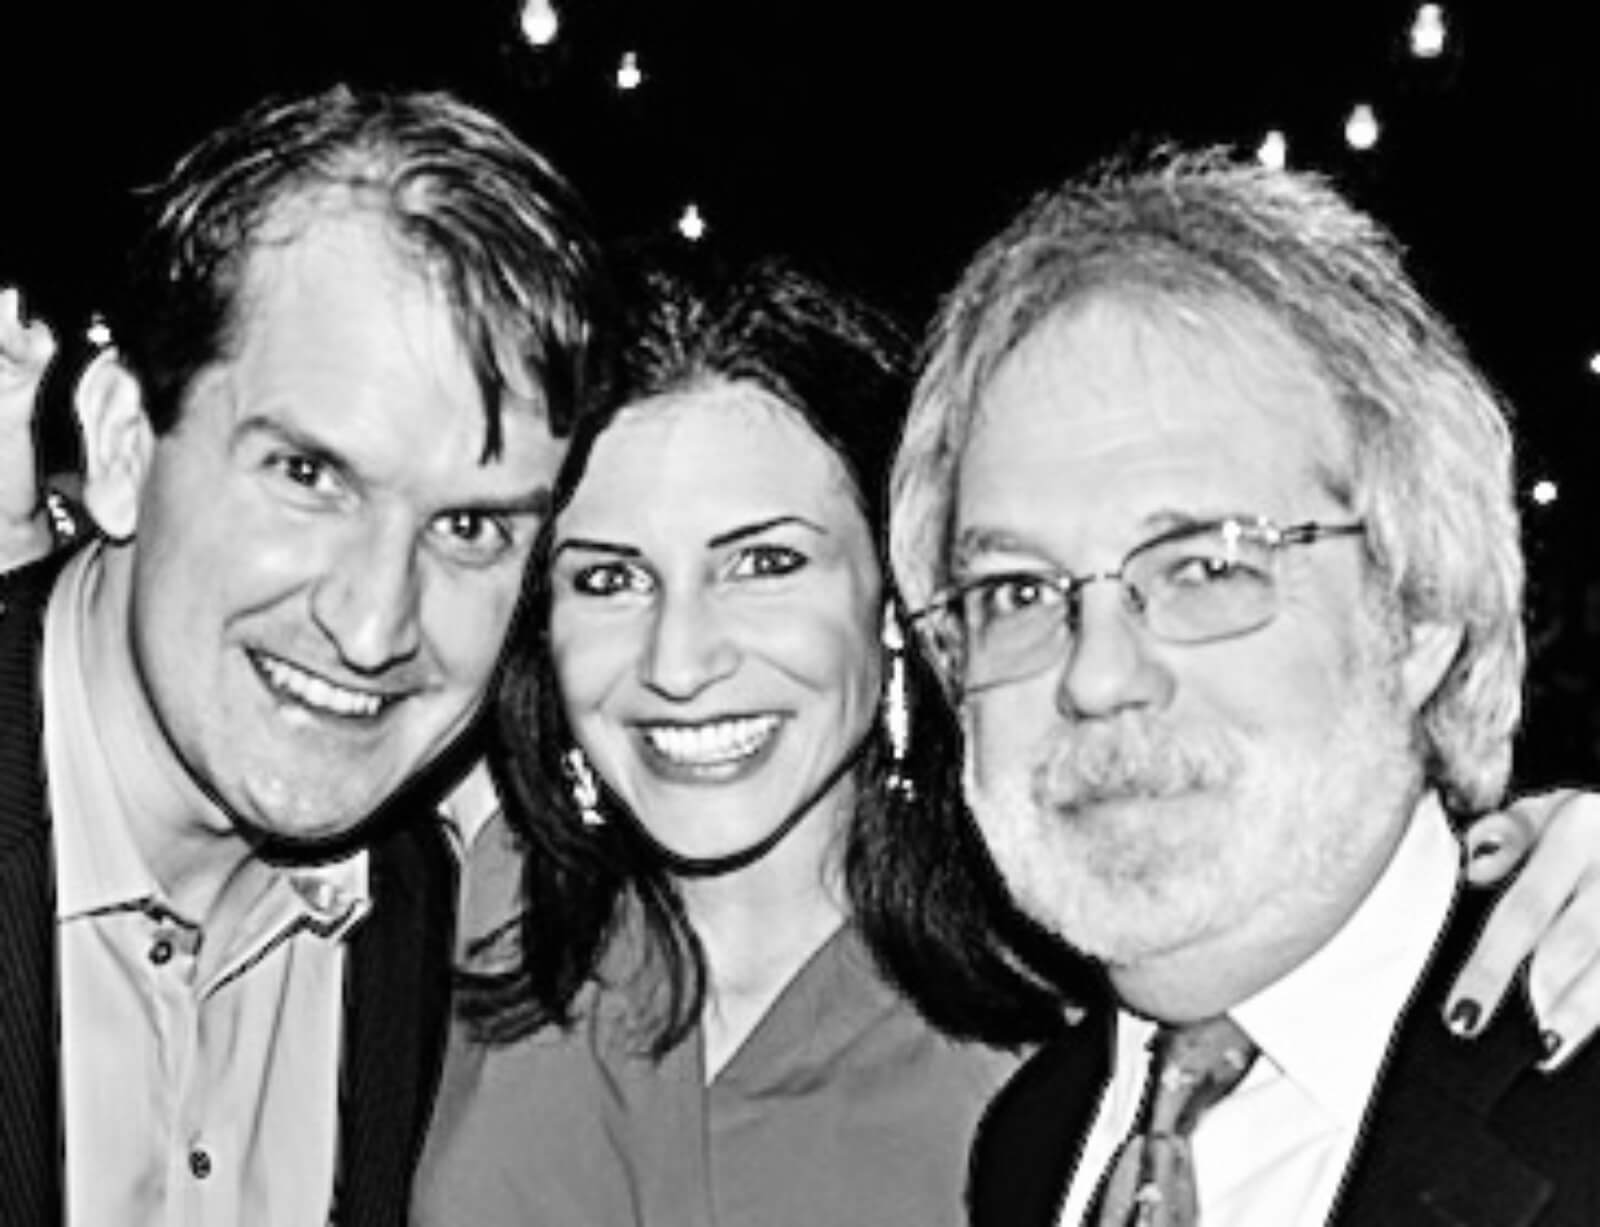 A black and white photo pictured from left to right: James Moye, Jenny Powers, and John Weidman.